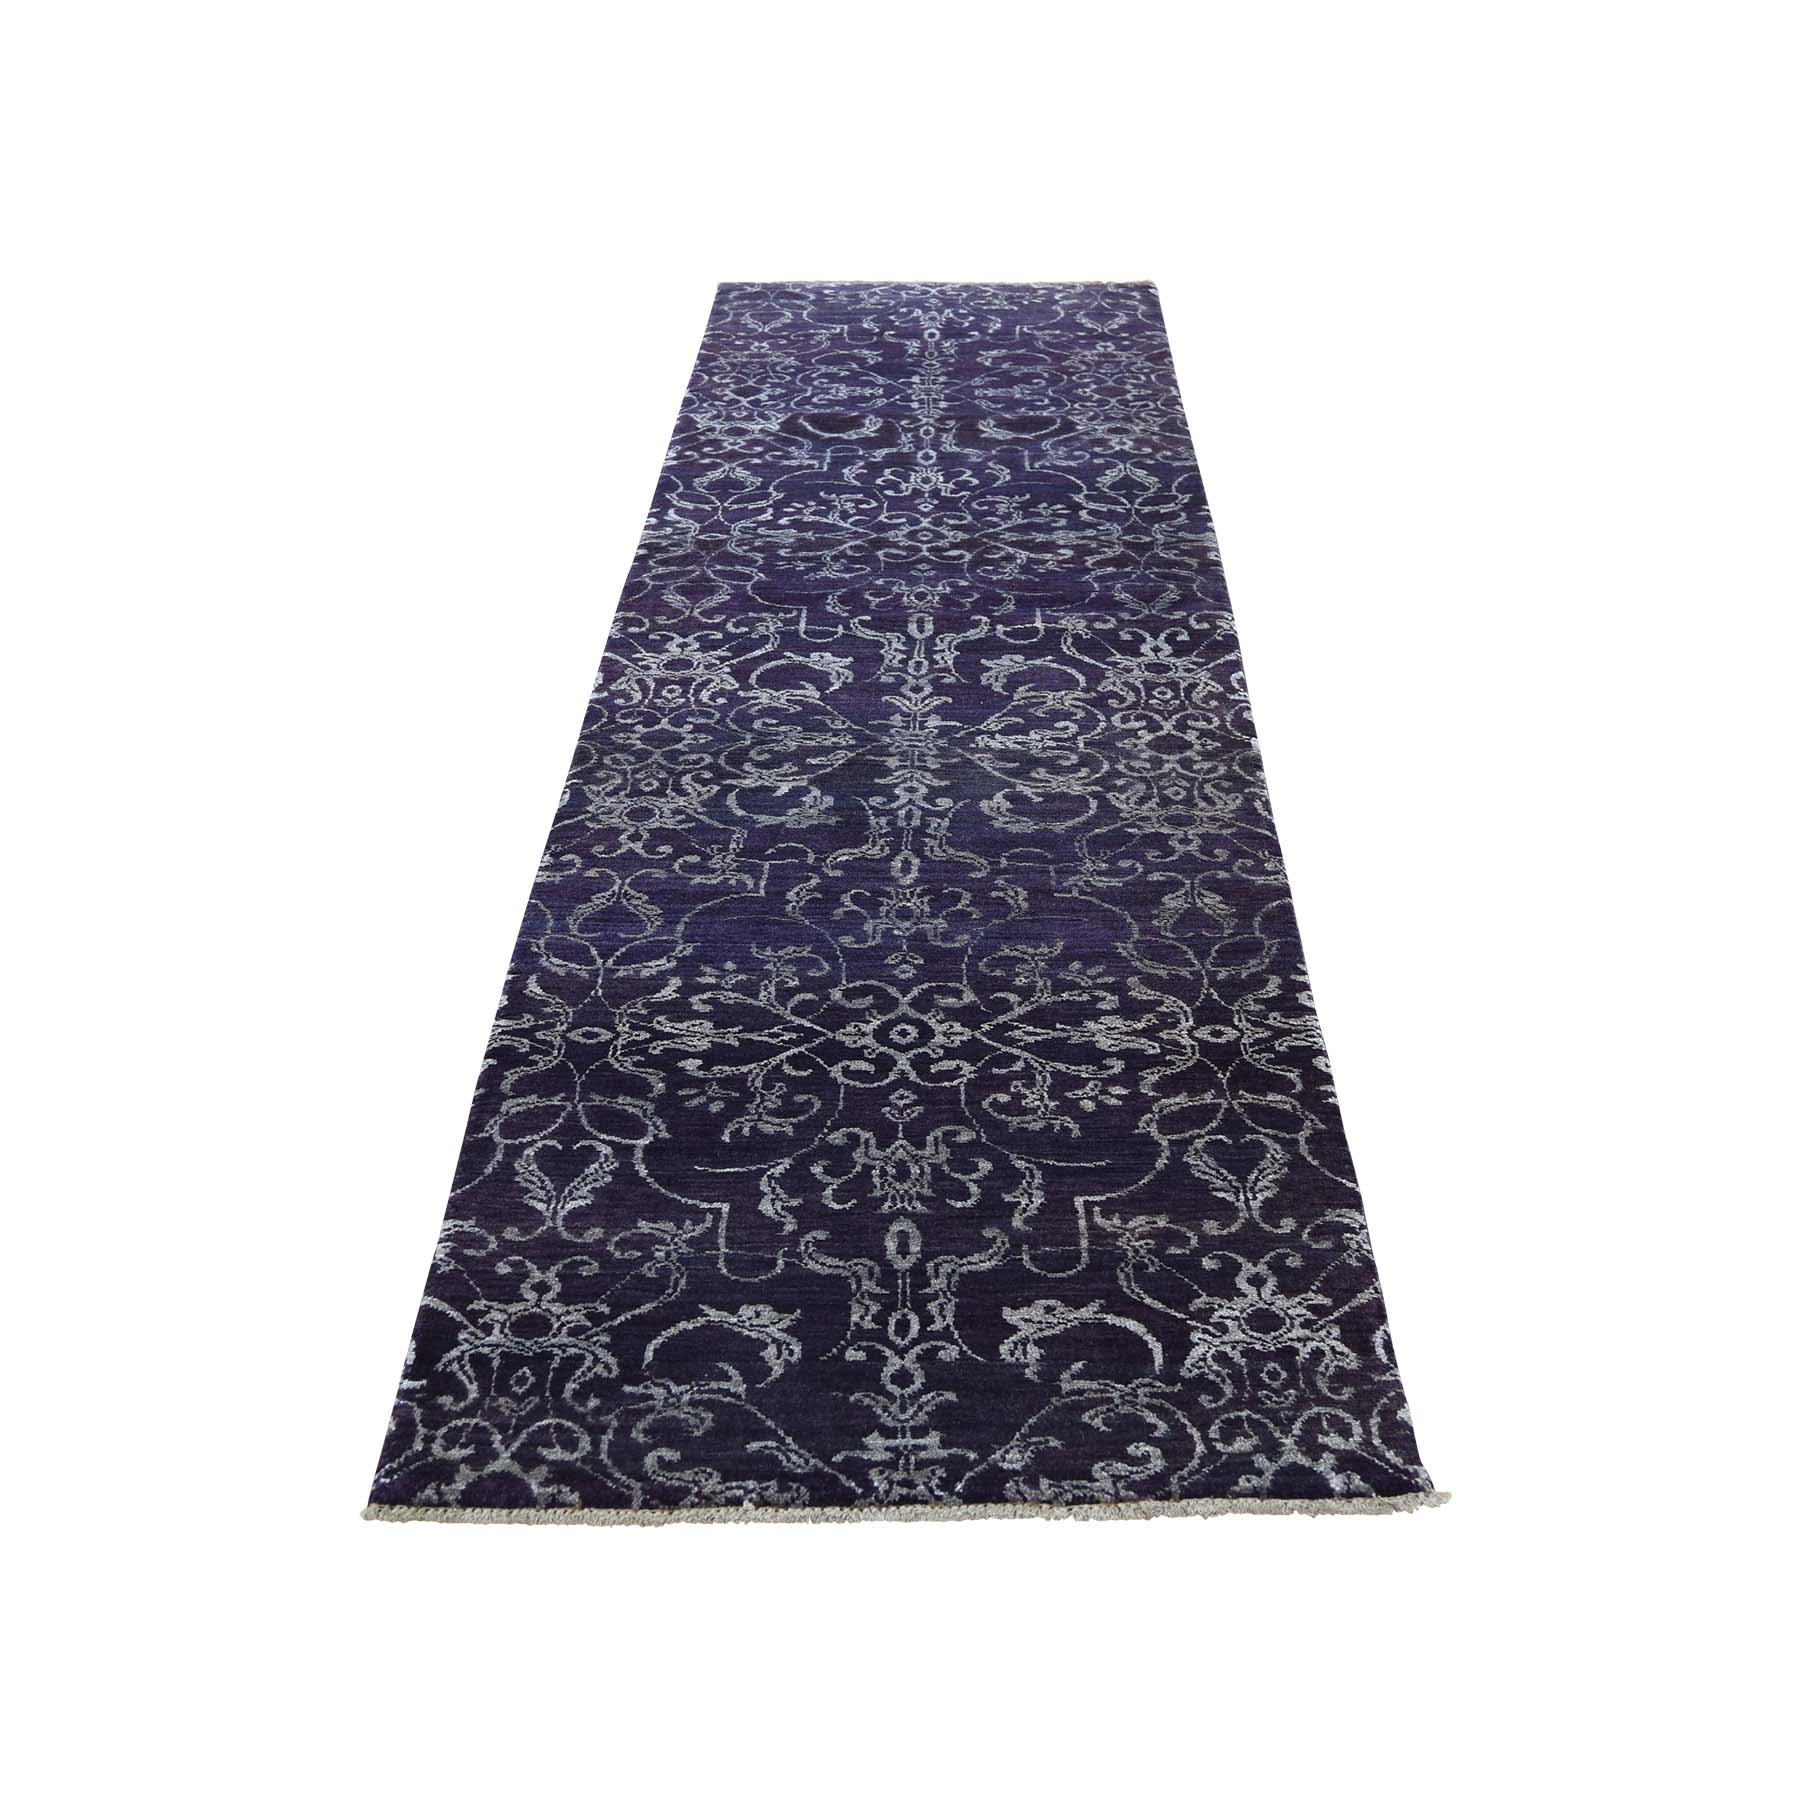 "2'5""x9'7"" Runner Wool and Silk Tone on Tone Damask Handmade Oriental Rug"